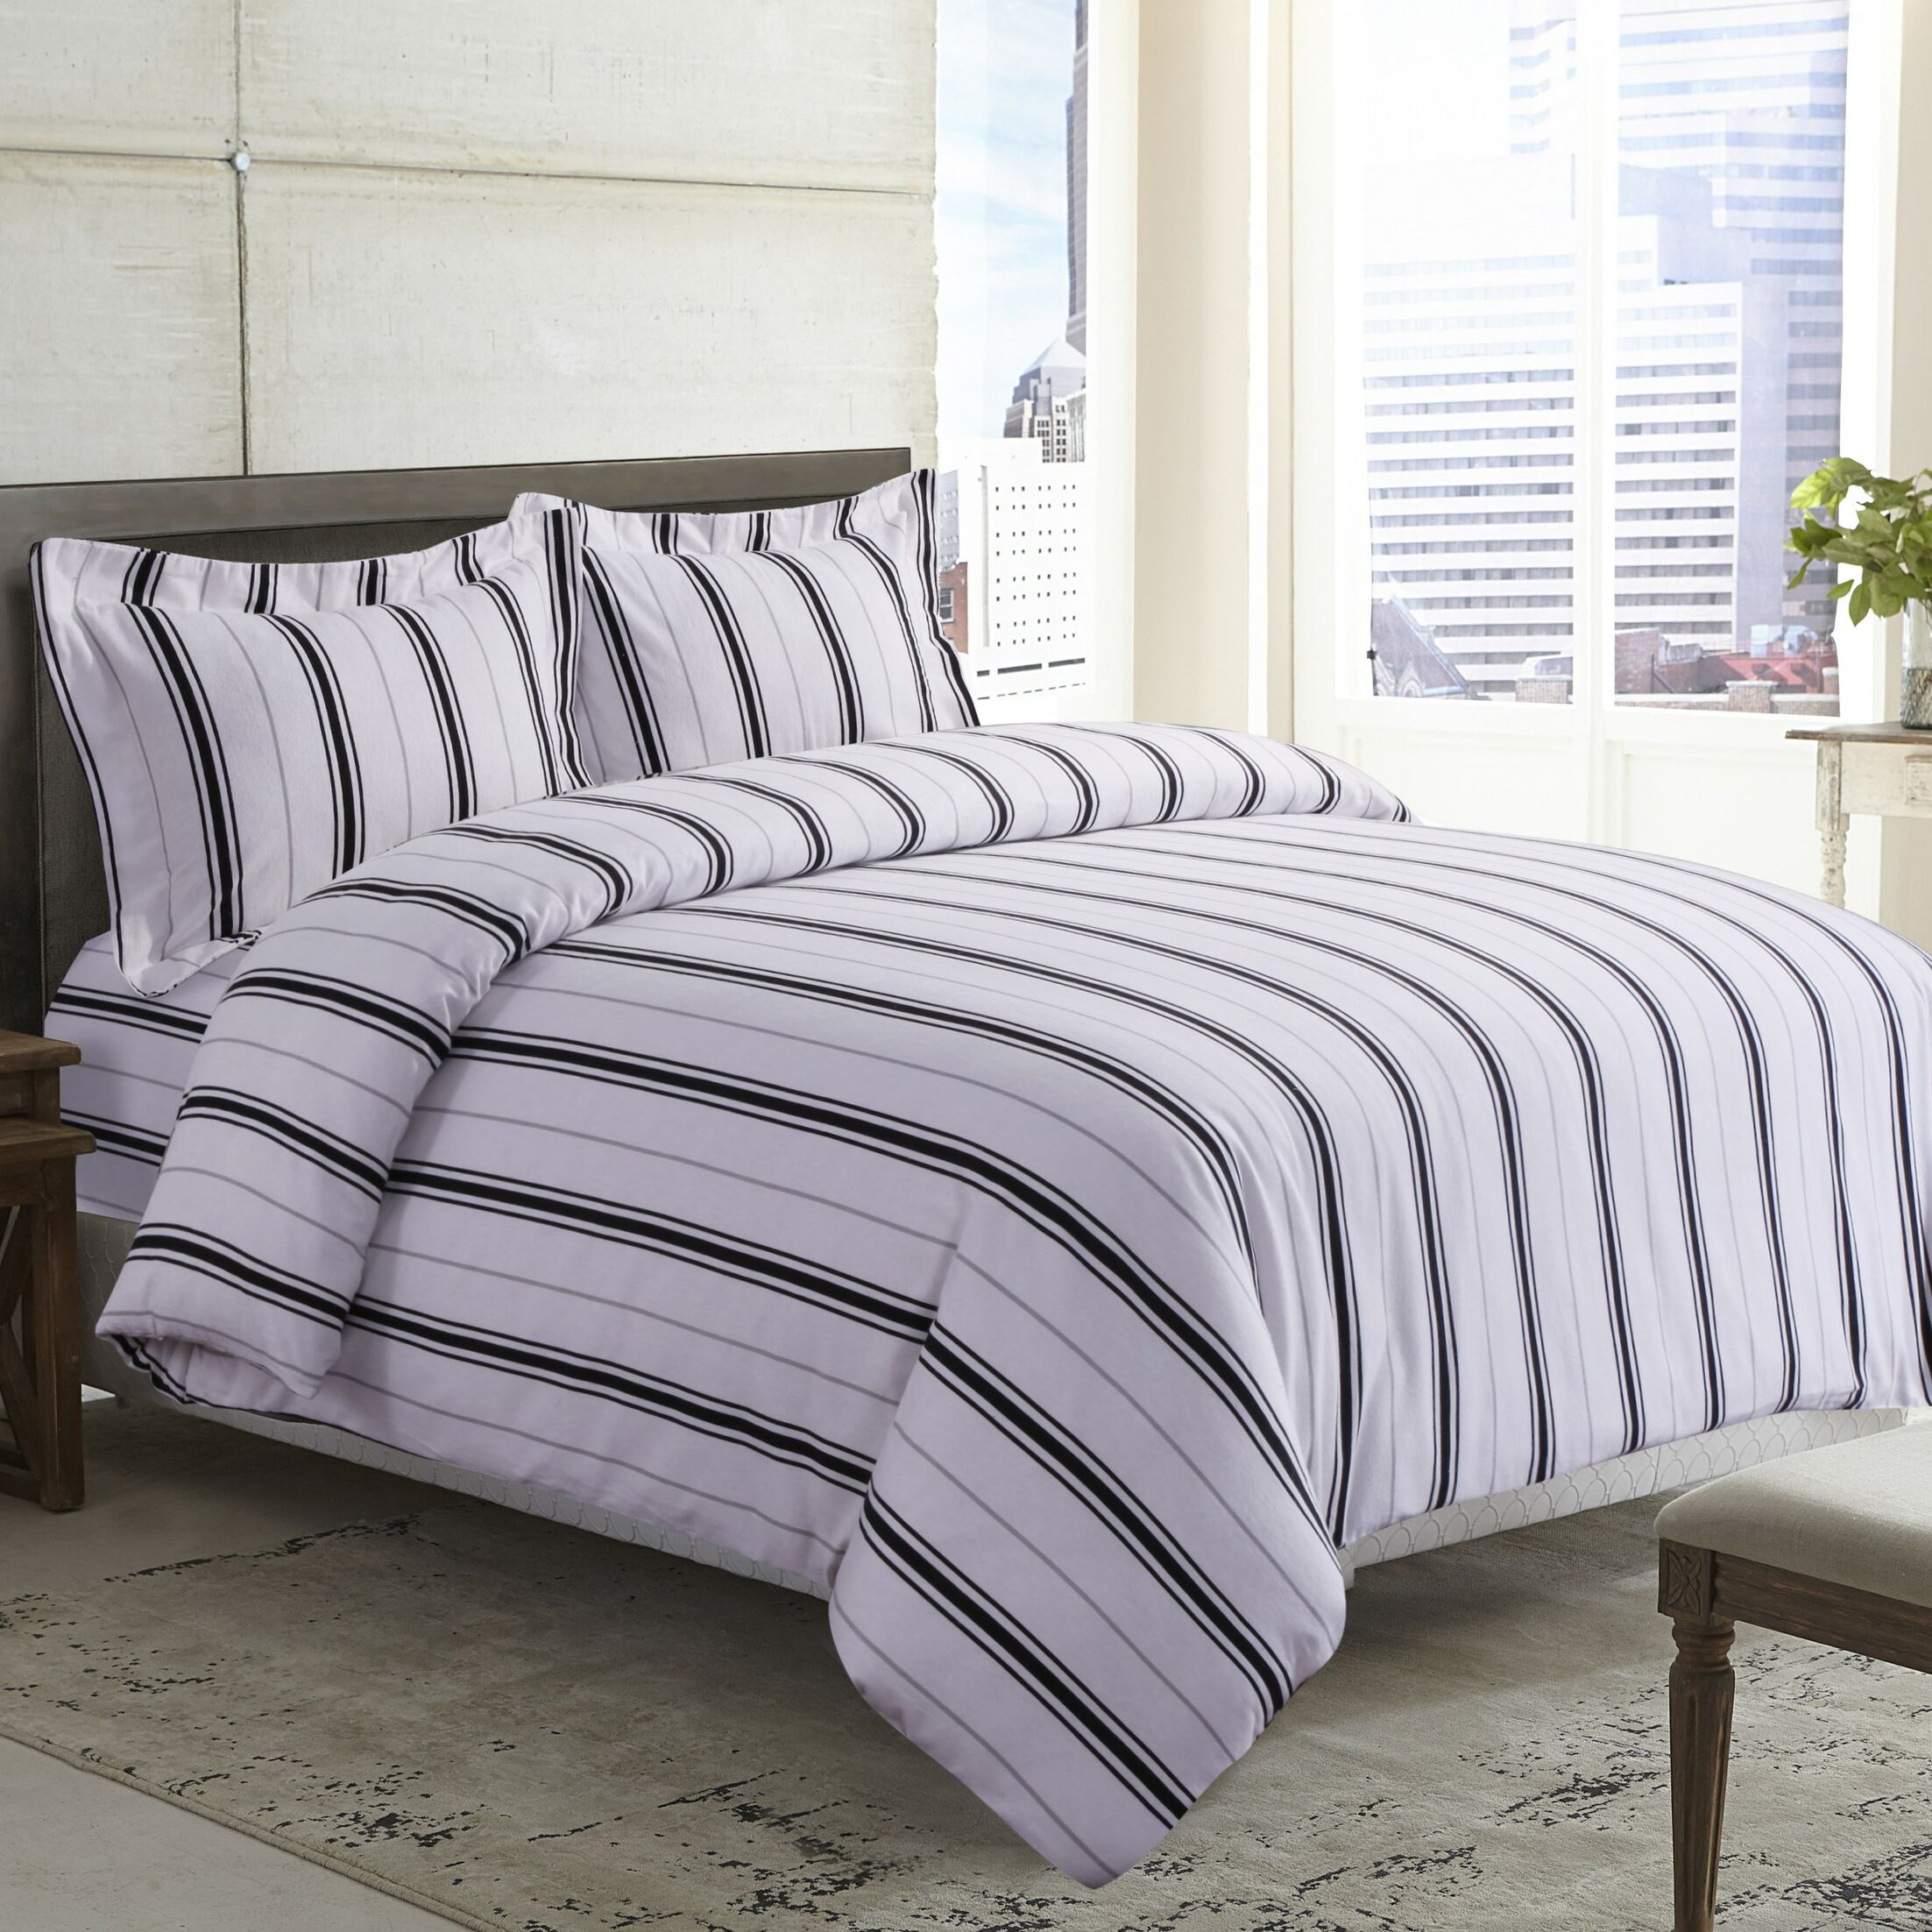 Stripe Printed Deep Pocket Flannel Sheet Set Color: Black Gray, Size: California King